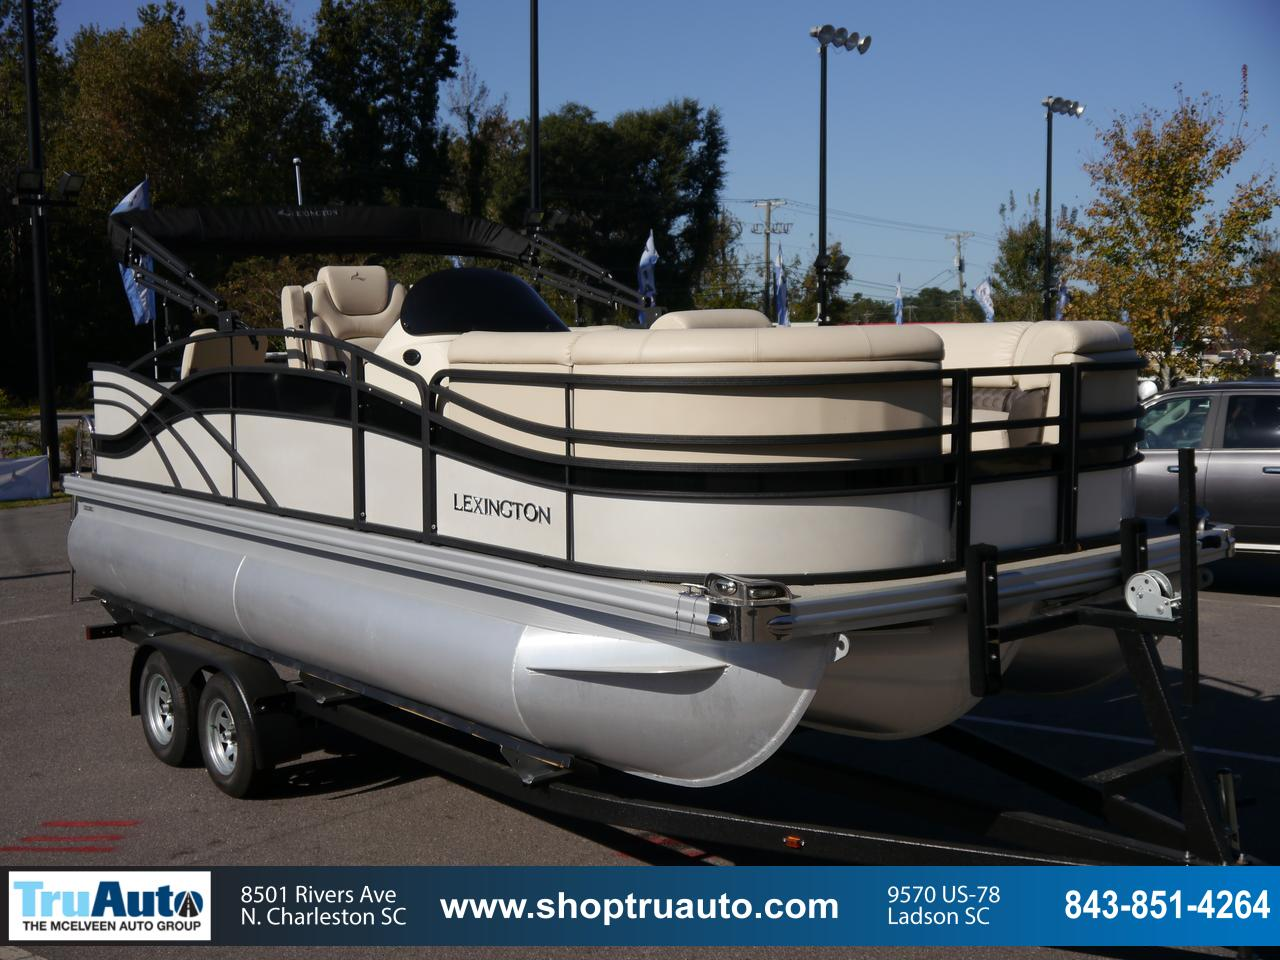 2018 Lexington 621 Tritoon 22ft Pontoon Ladson Sc